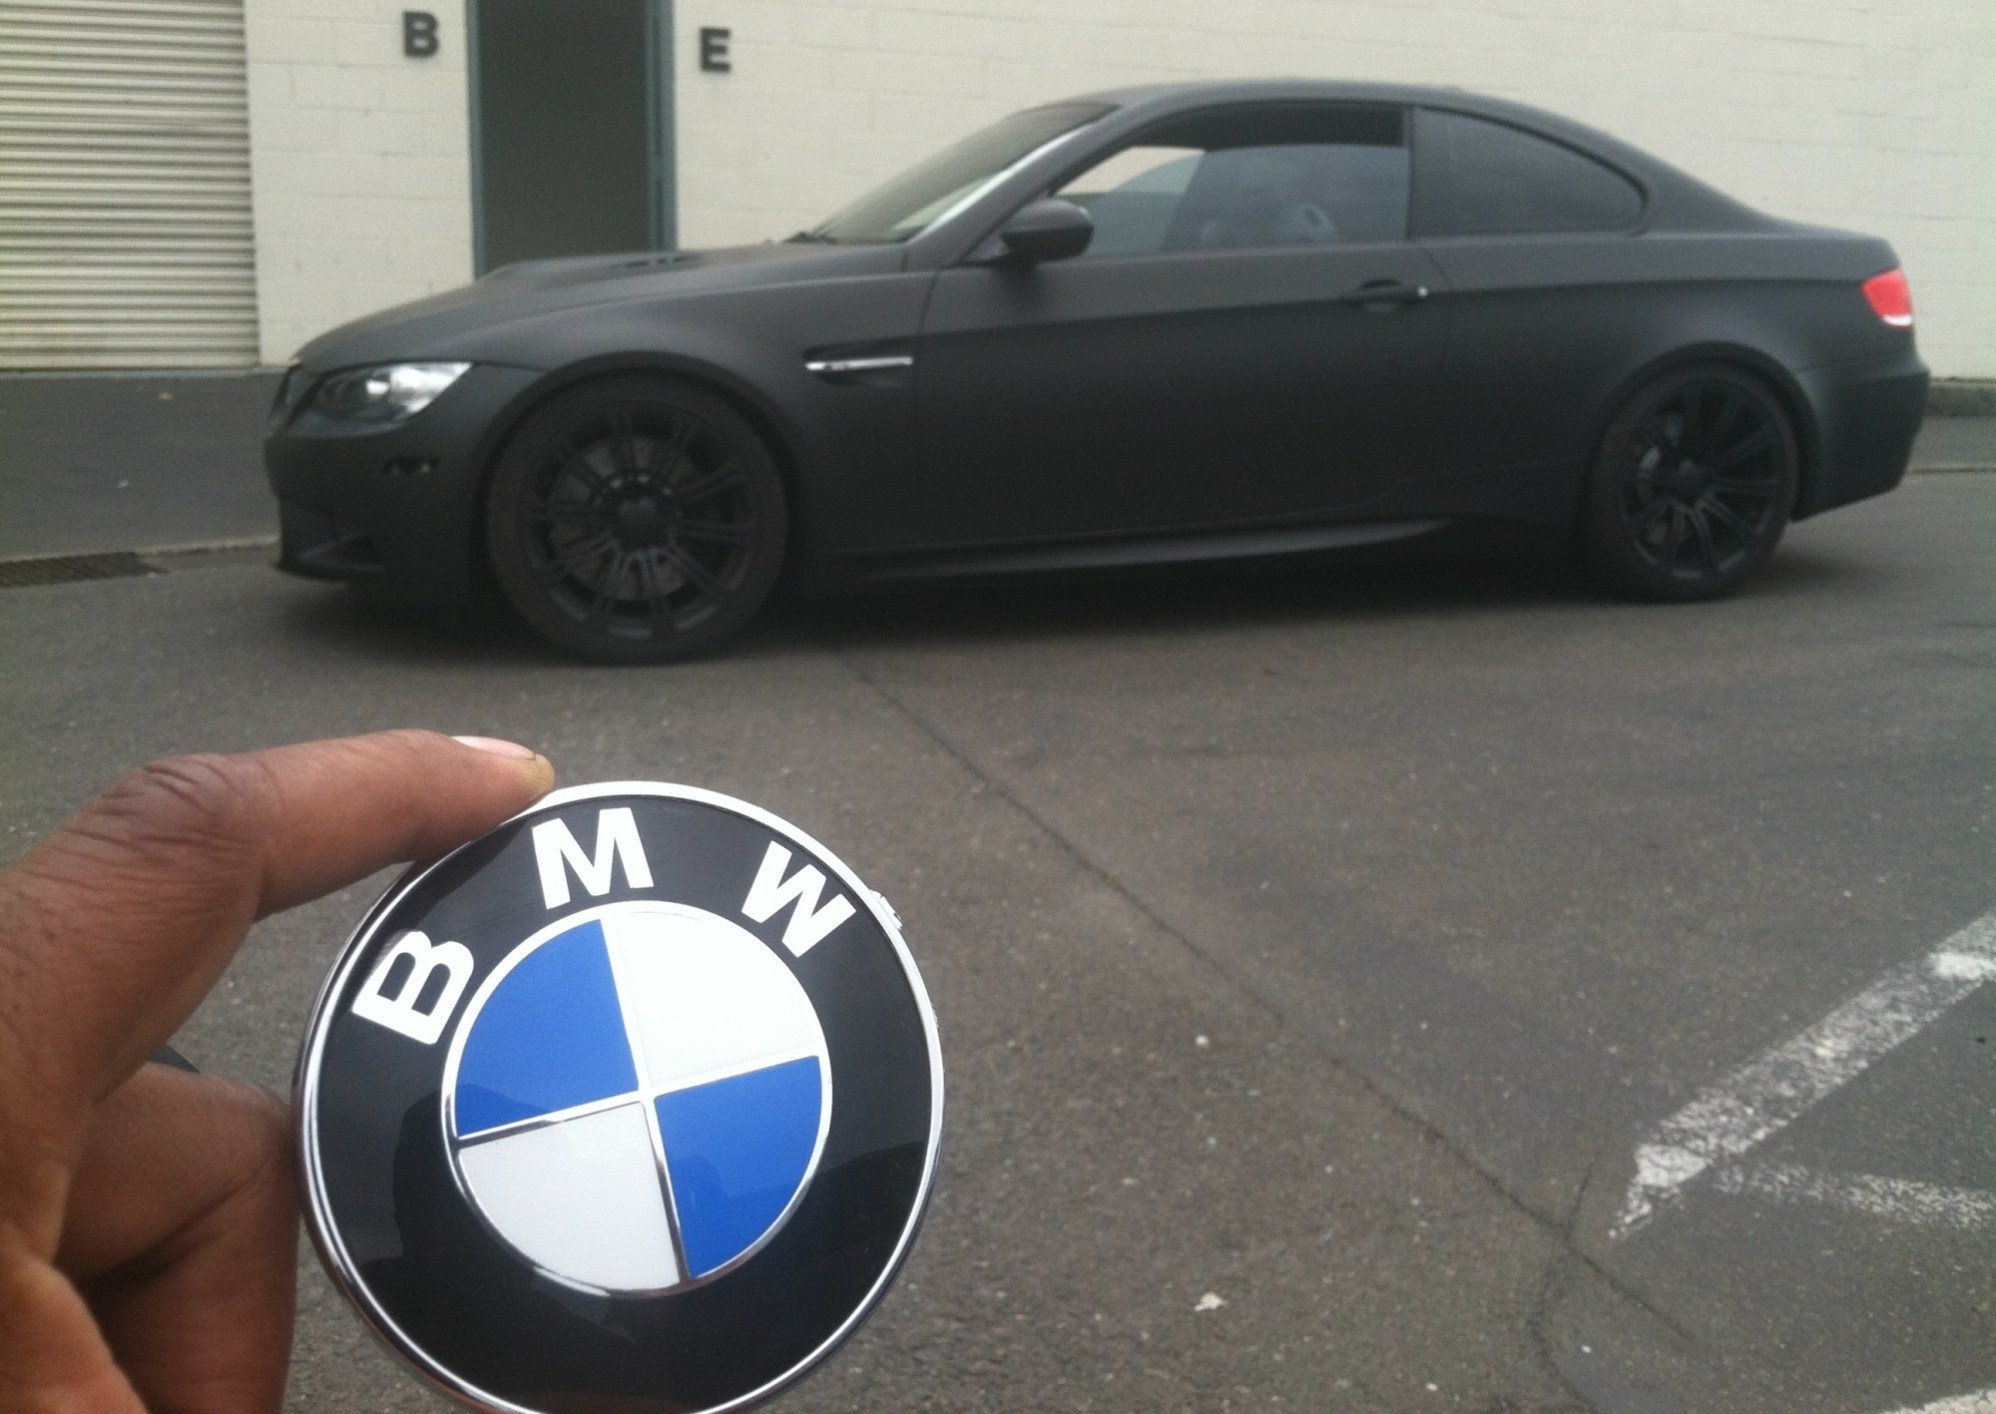 bmw color change silver to matte black-13